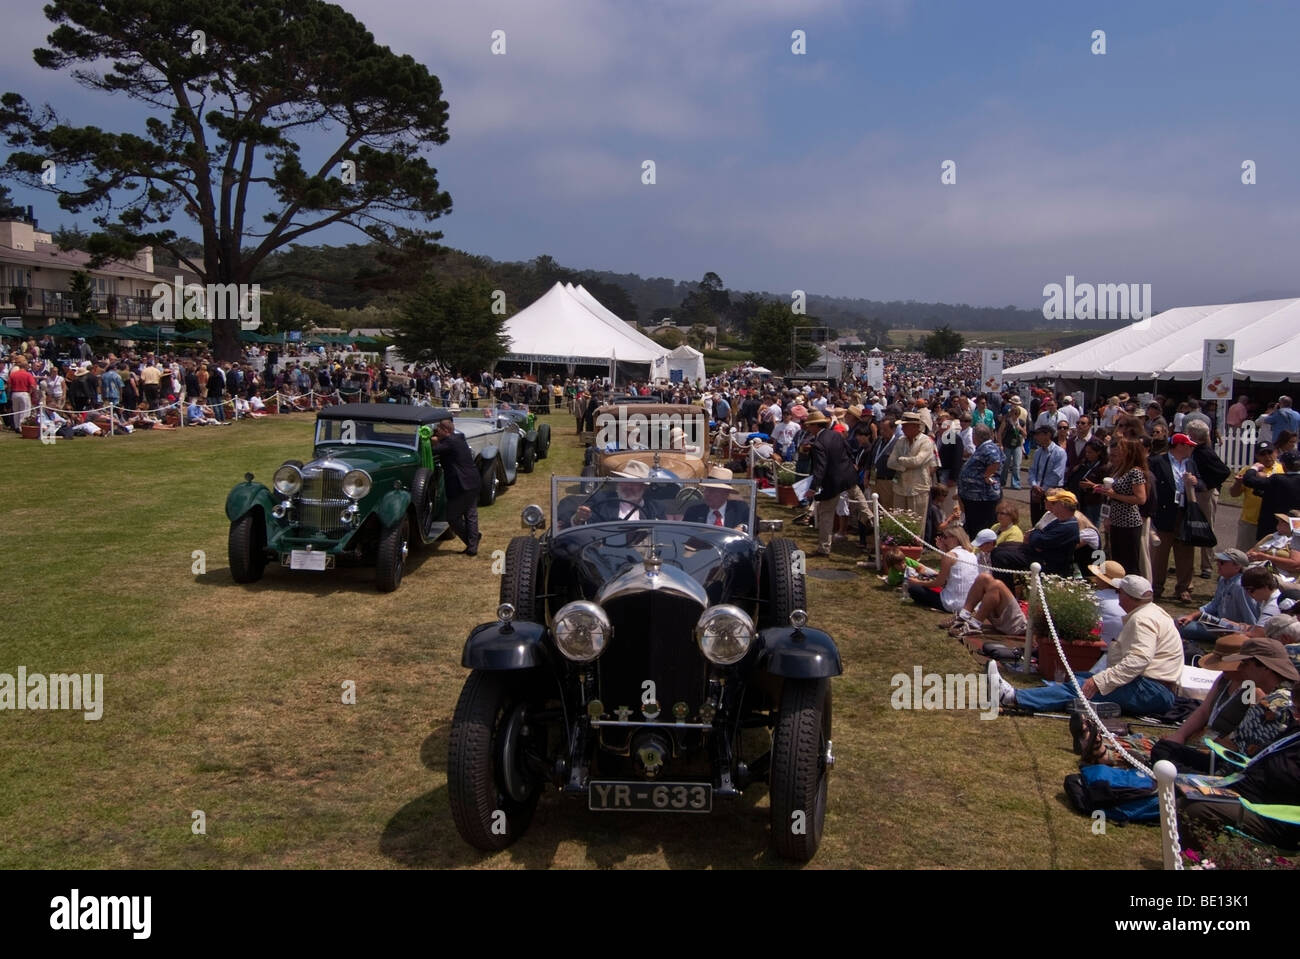 Vintage British automobiles waiting to drive onto the main stage during the 2009 Pebble Beach Concours d'Elegance - Stock Image